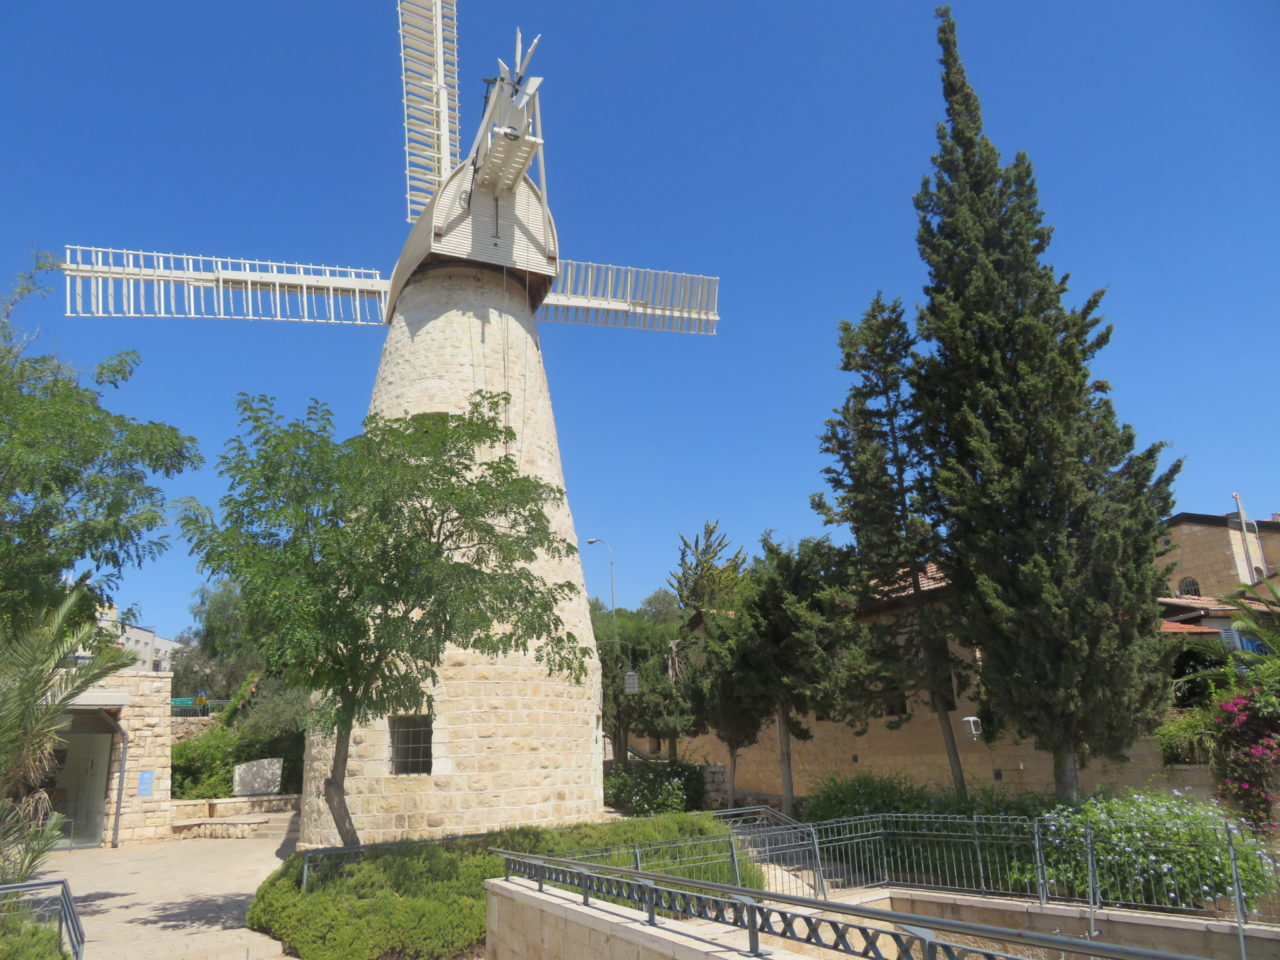 The joys of walking Jerusalem - The windmill in the Yomin Moshe neighborhood